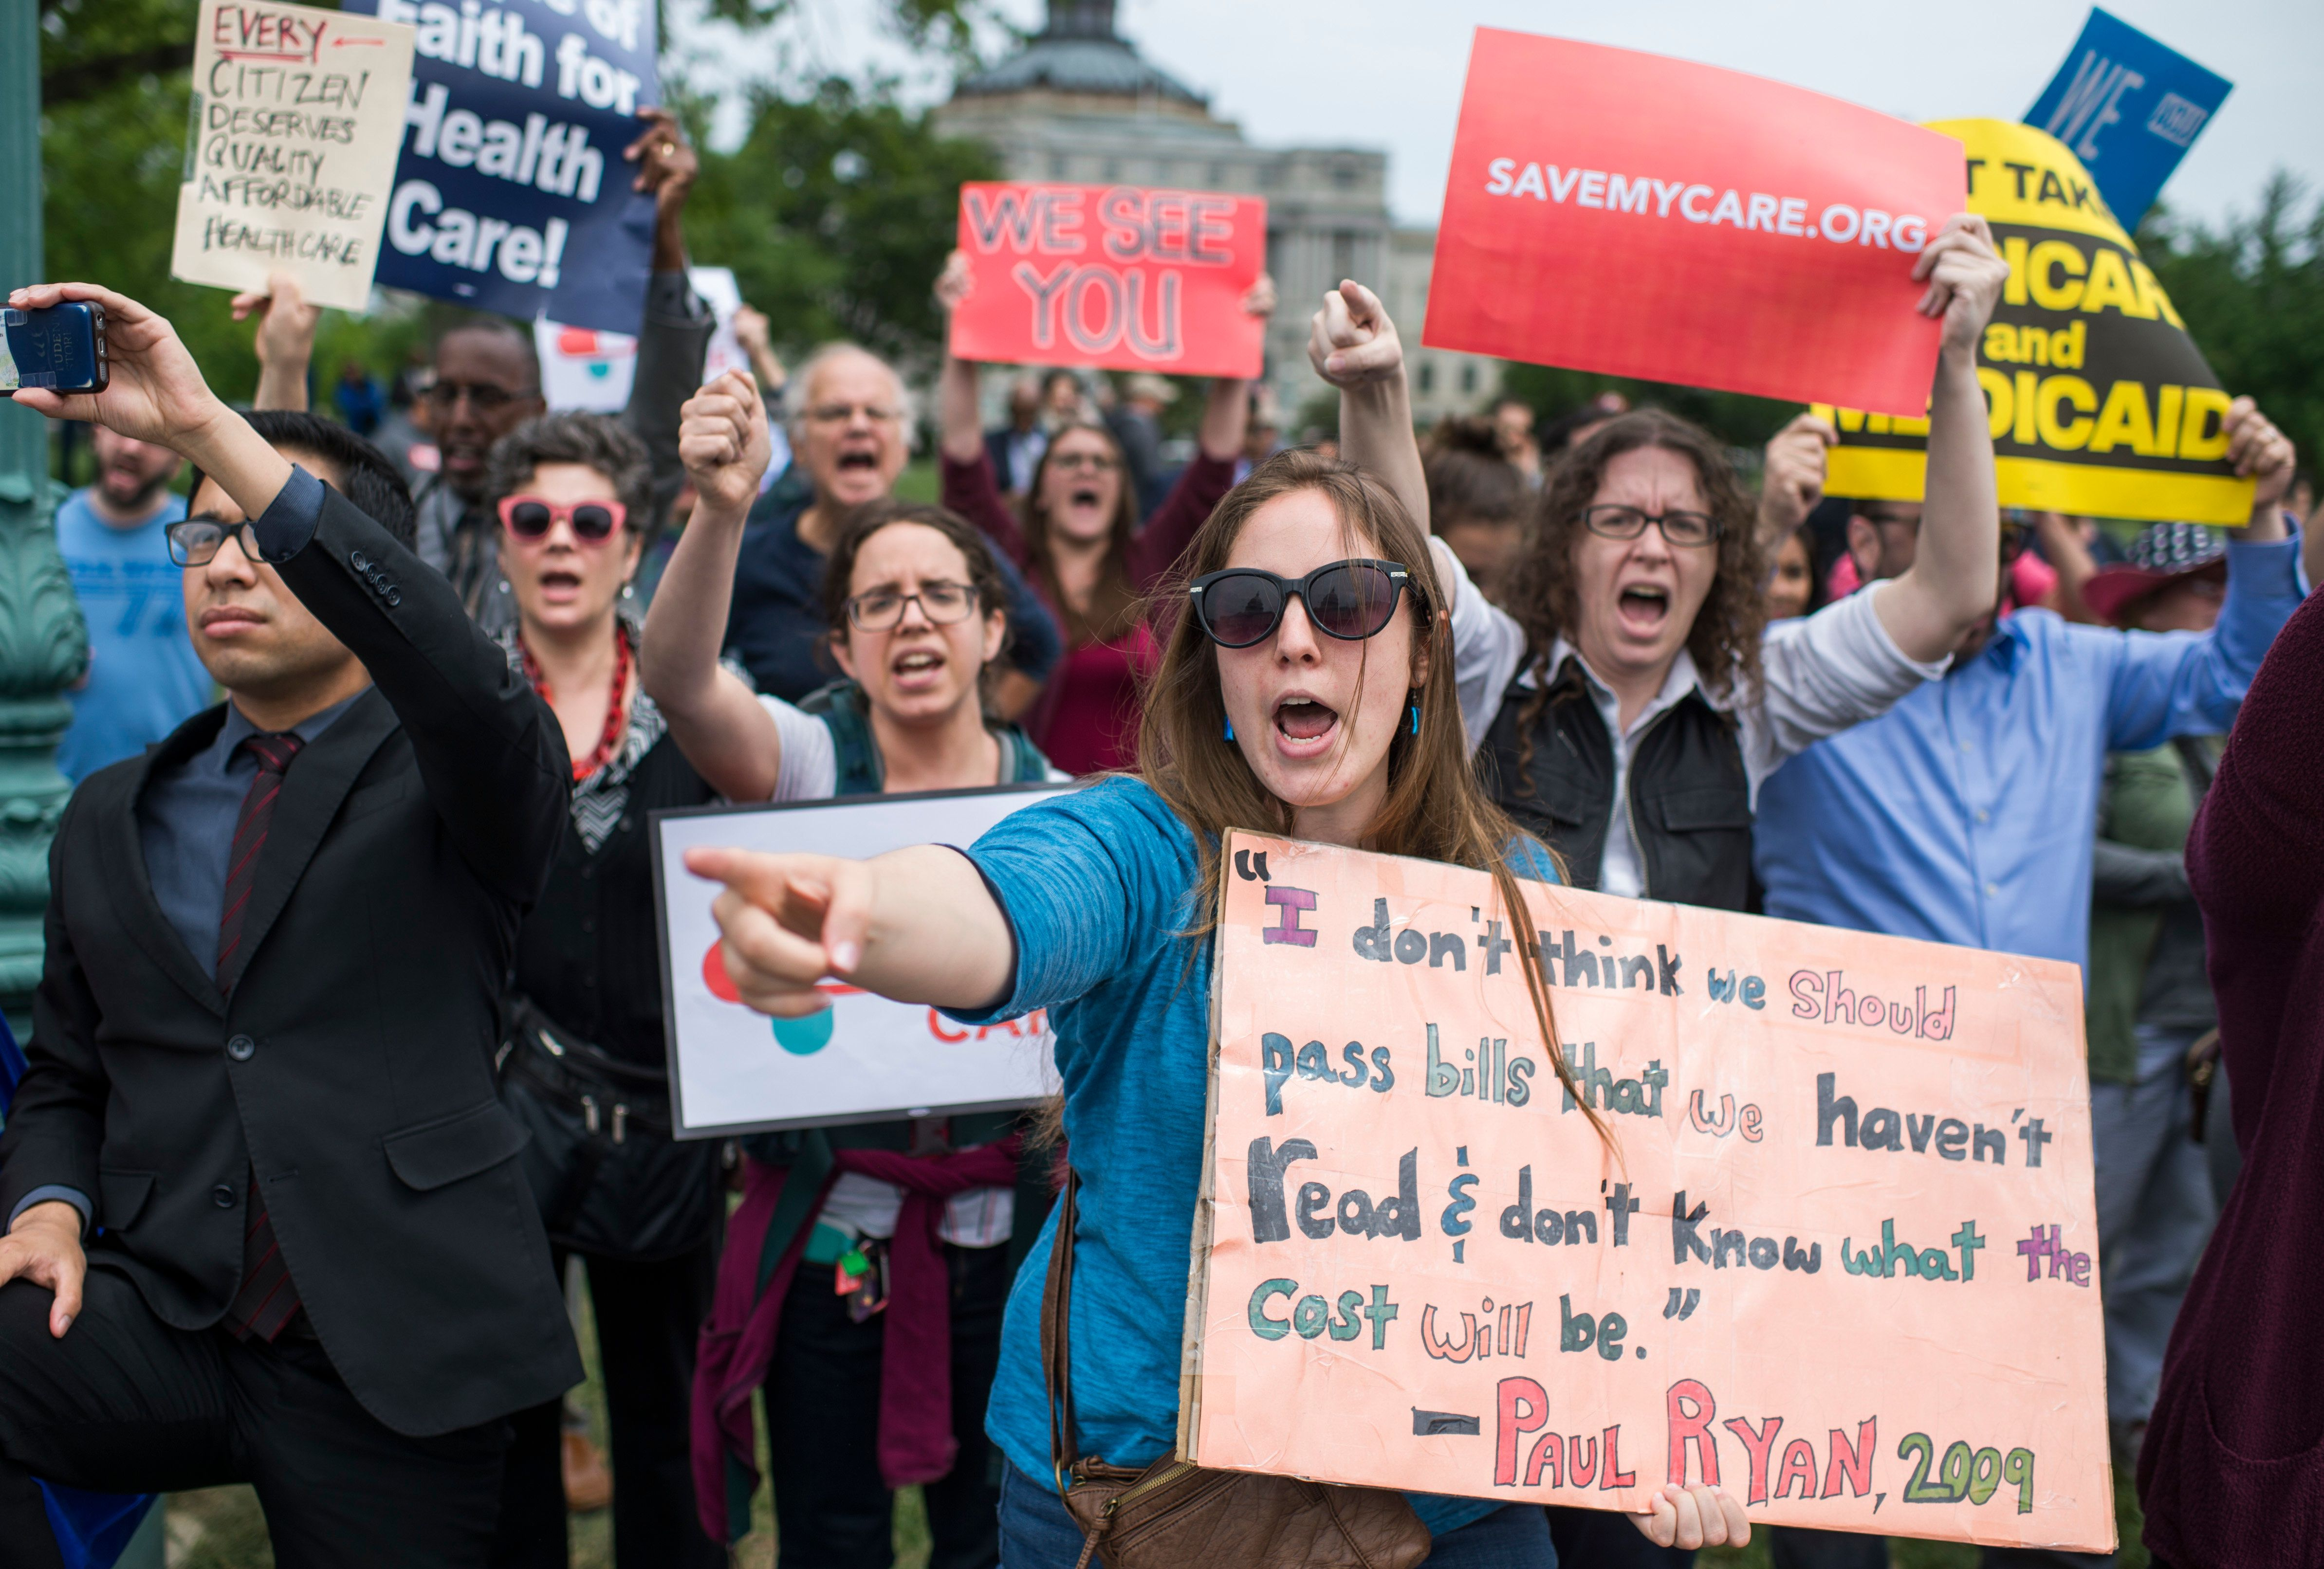 Women protest the AHCA at the Capitol in Washington D.C. earlier this month.